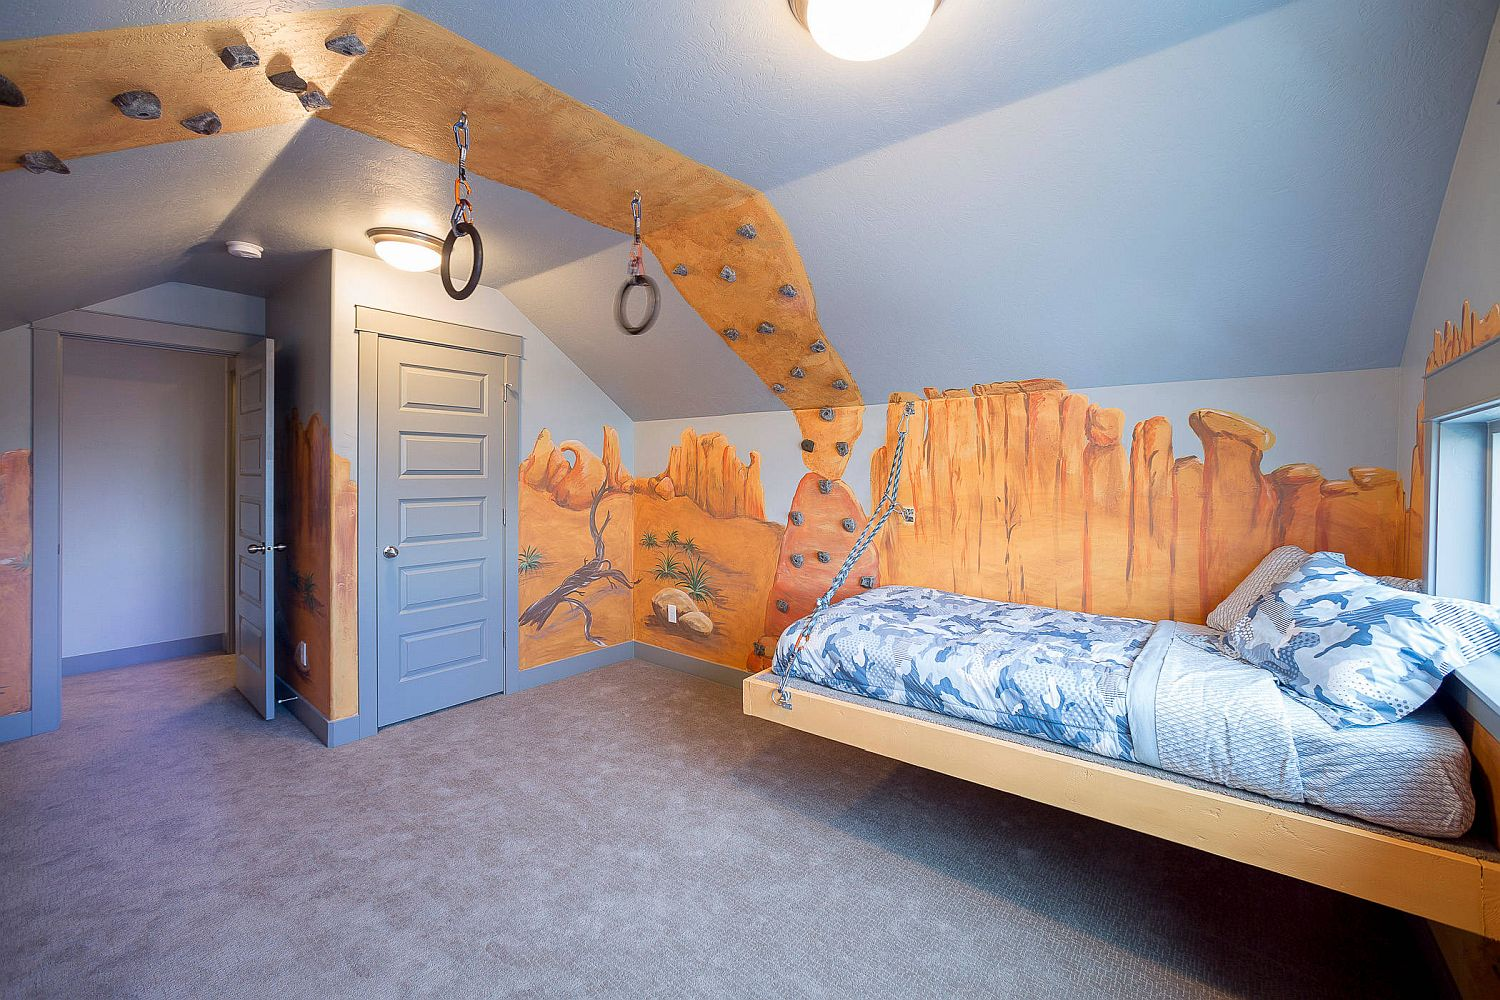 Design a more athletic and unique kids' bedroom with rings and climbing wall